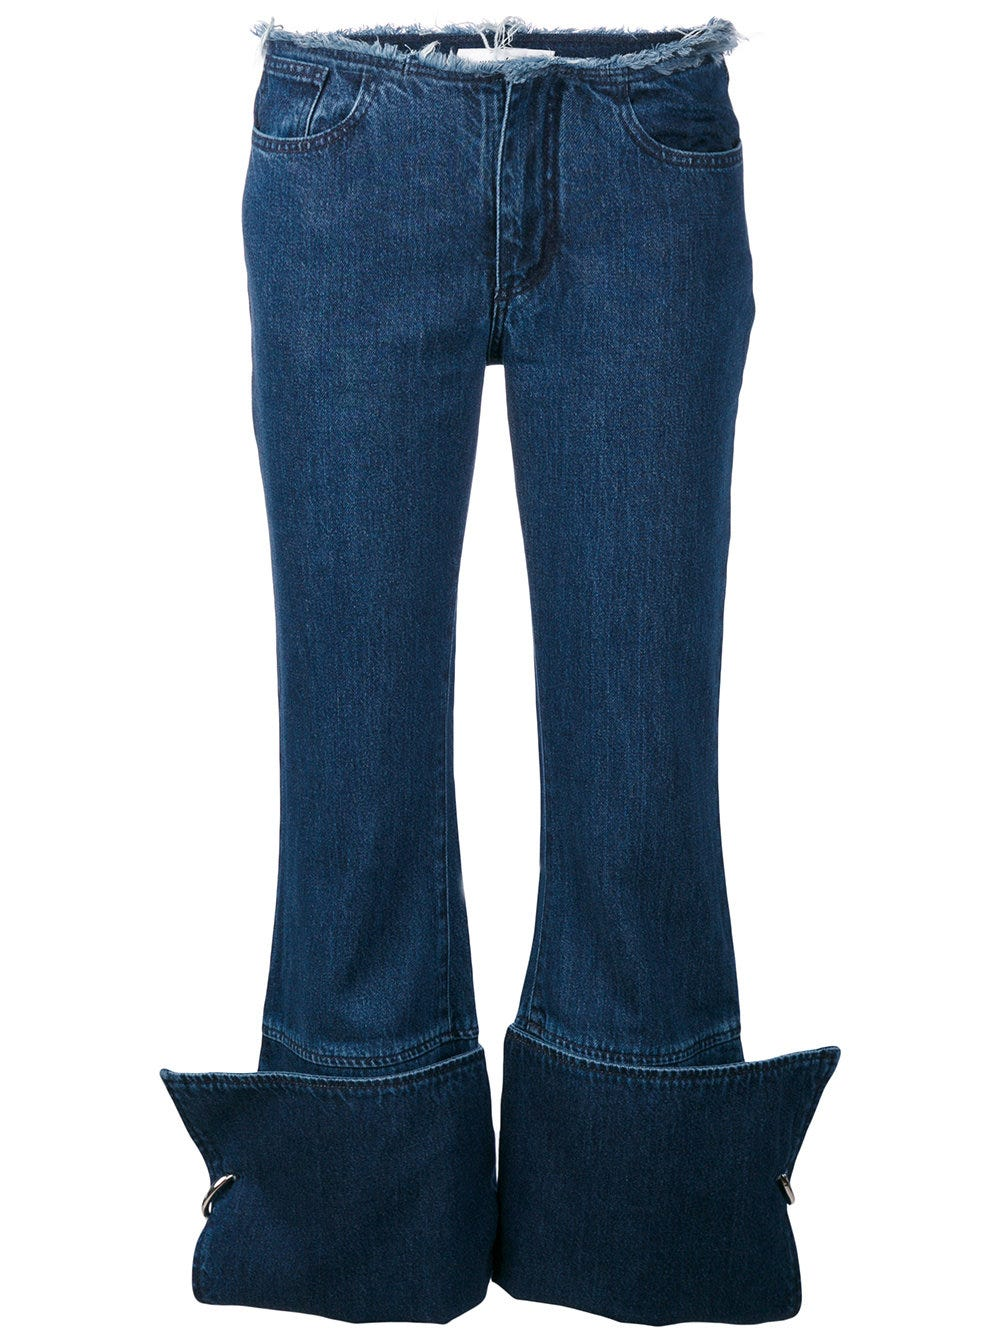 turnover denim jeans - Blue Marques Almeida RQwrs2Eia